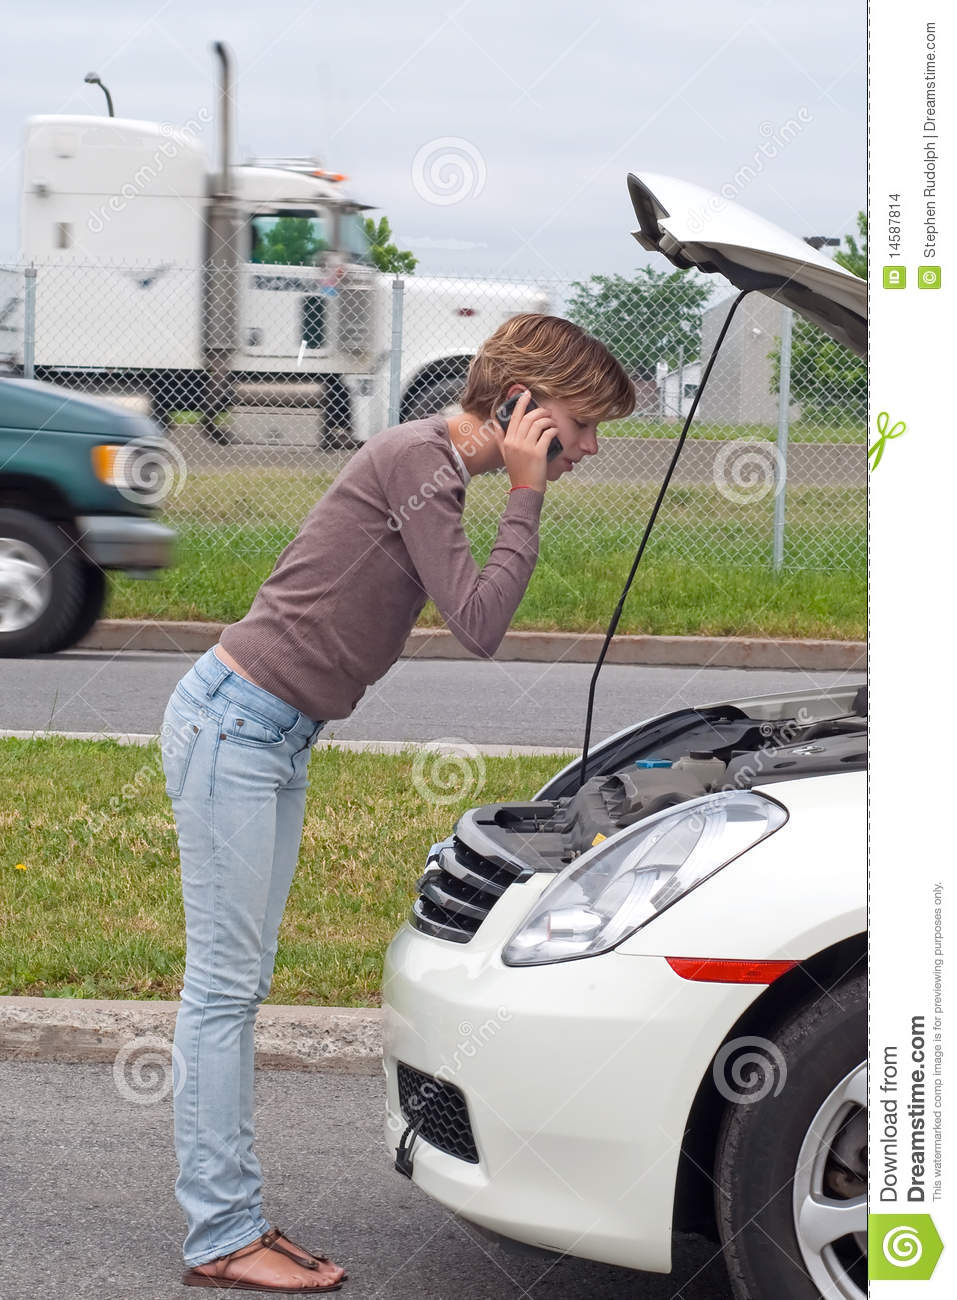 Broken Down Abandoned Stock Photos Broken Down Abandoned: Woman With Broken Down Car Stock Photo. Image Of Hood